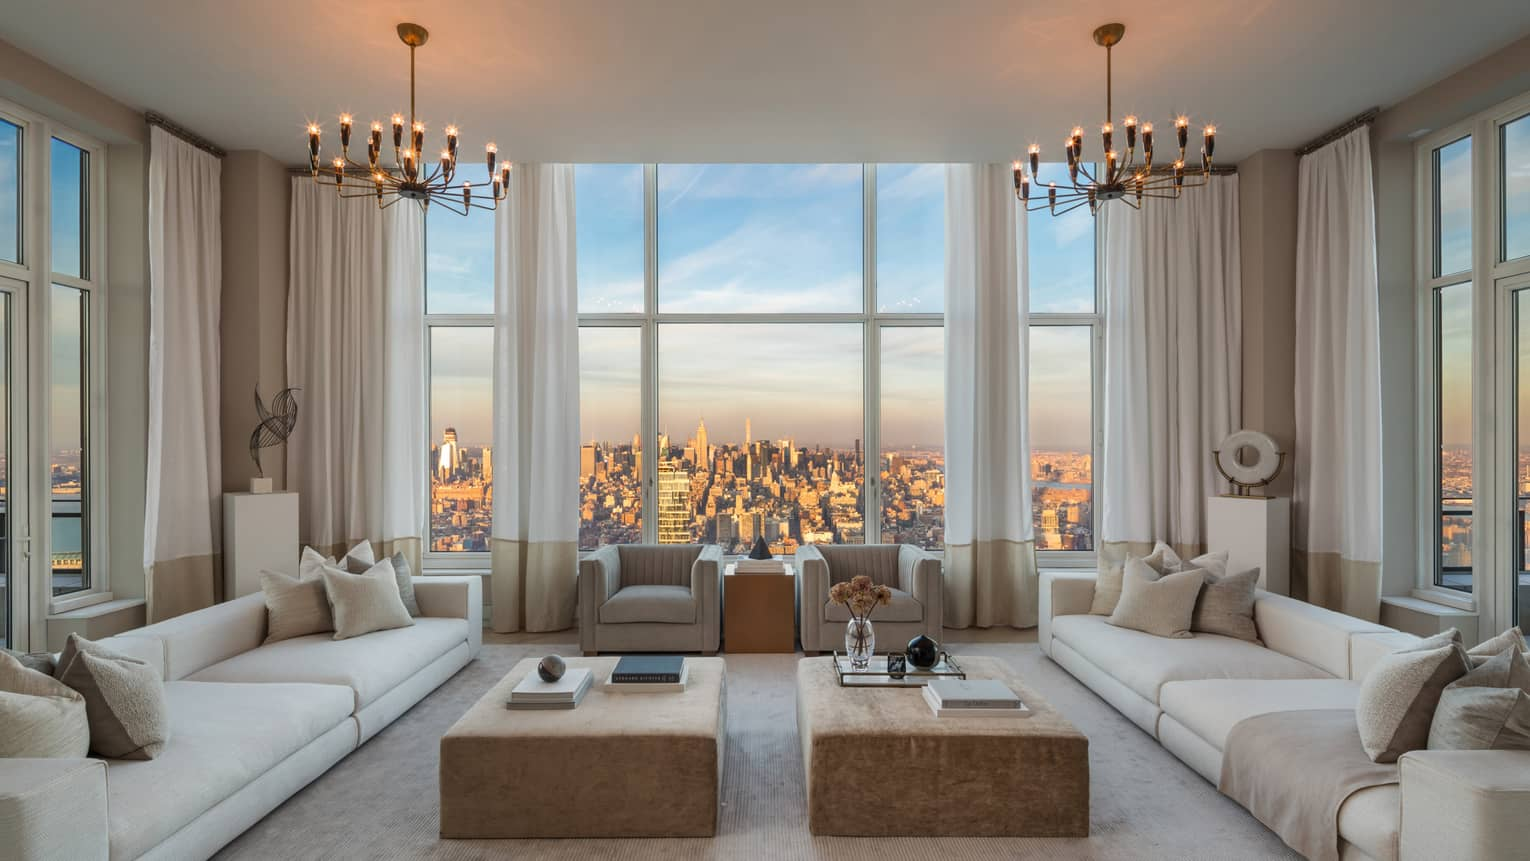 Living room with two long white sofas, armchairs around coffee tables, picture windows with city views